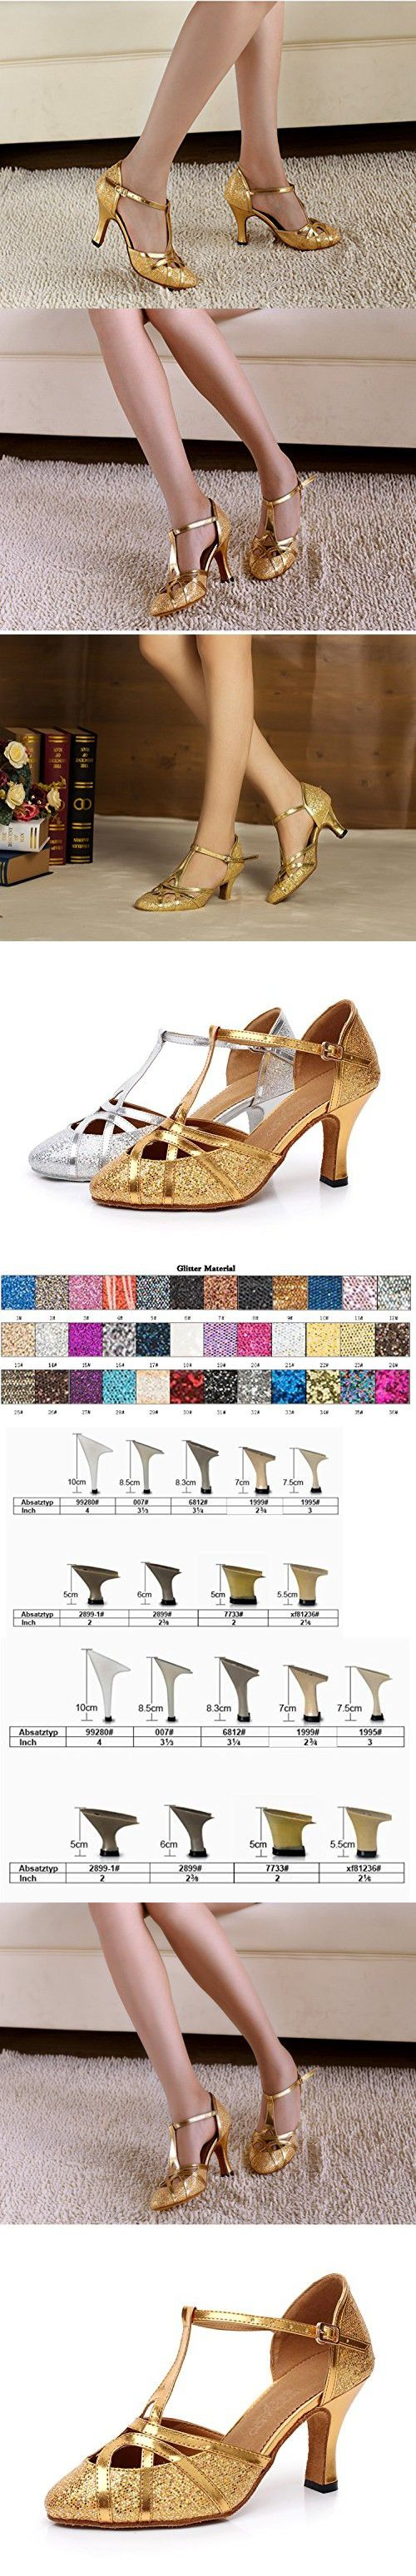 TOETOS BARBARA-58 New Women's Wedding Party Open Toe High Heel Rhinestones Elegant Peep Toe Pumps Shoes GOLD SIZE 11